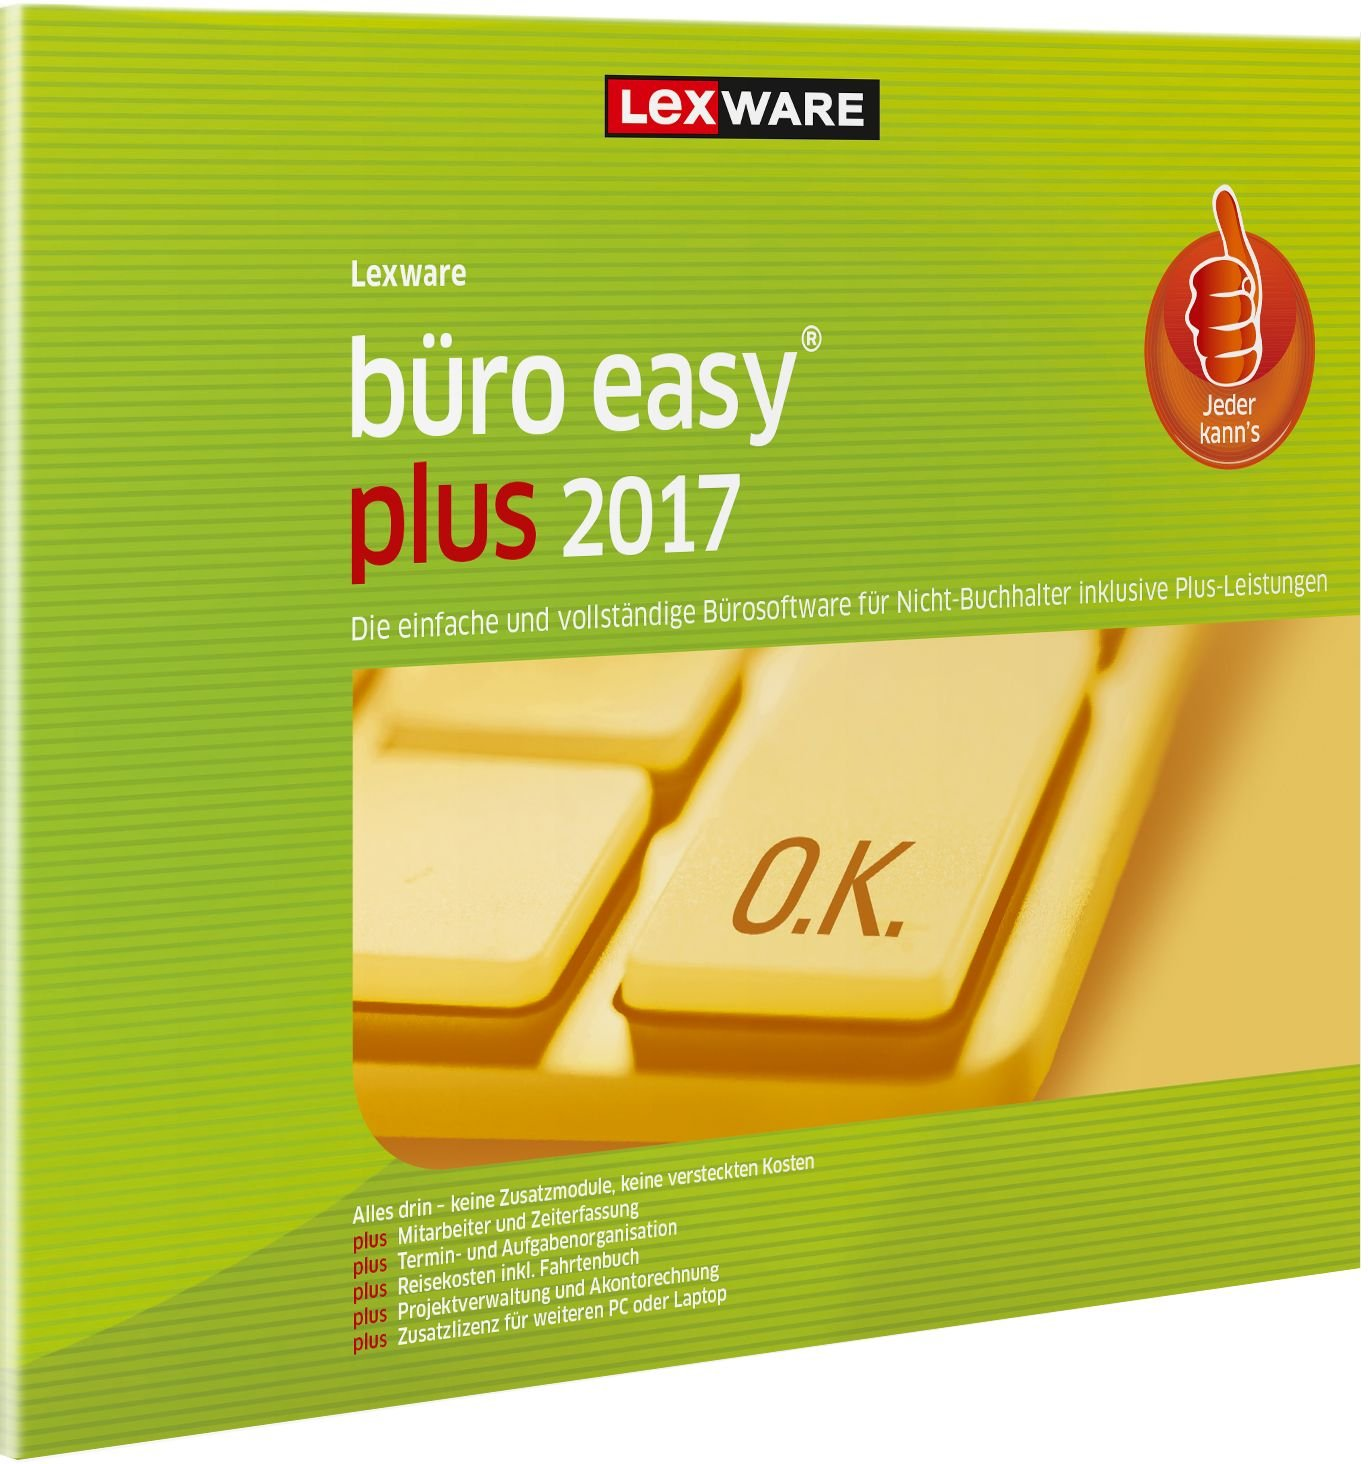 Lexware büro easy plus 2017